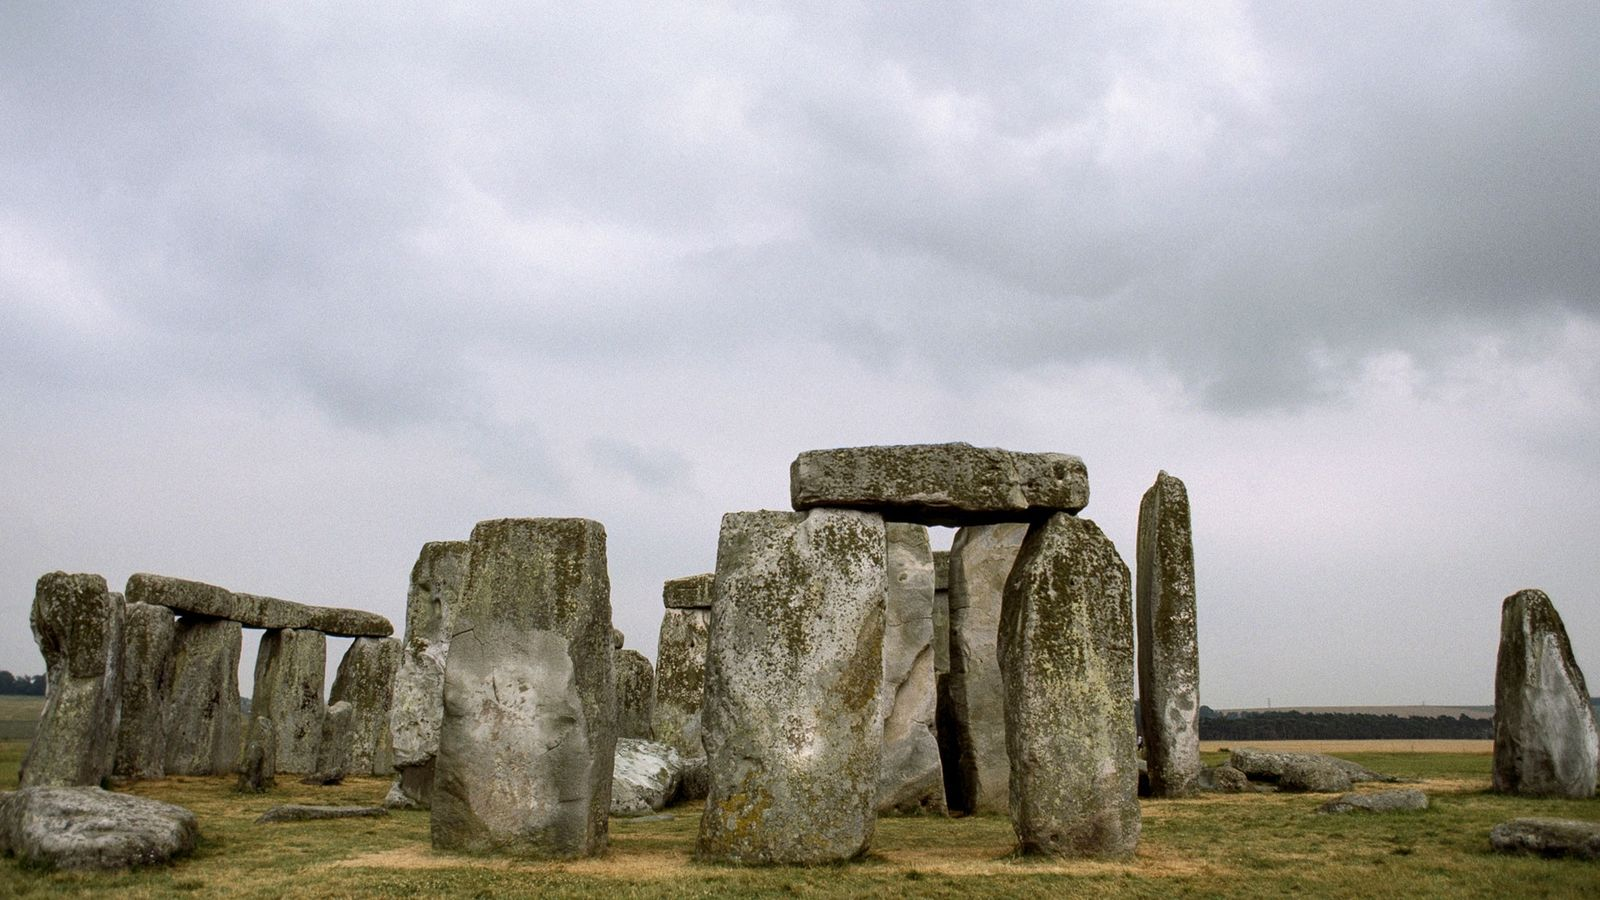 Many ceremonial sites built around Stonehenge in the late Neolithic period attracted people who came from ...